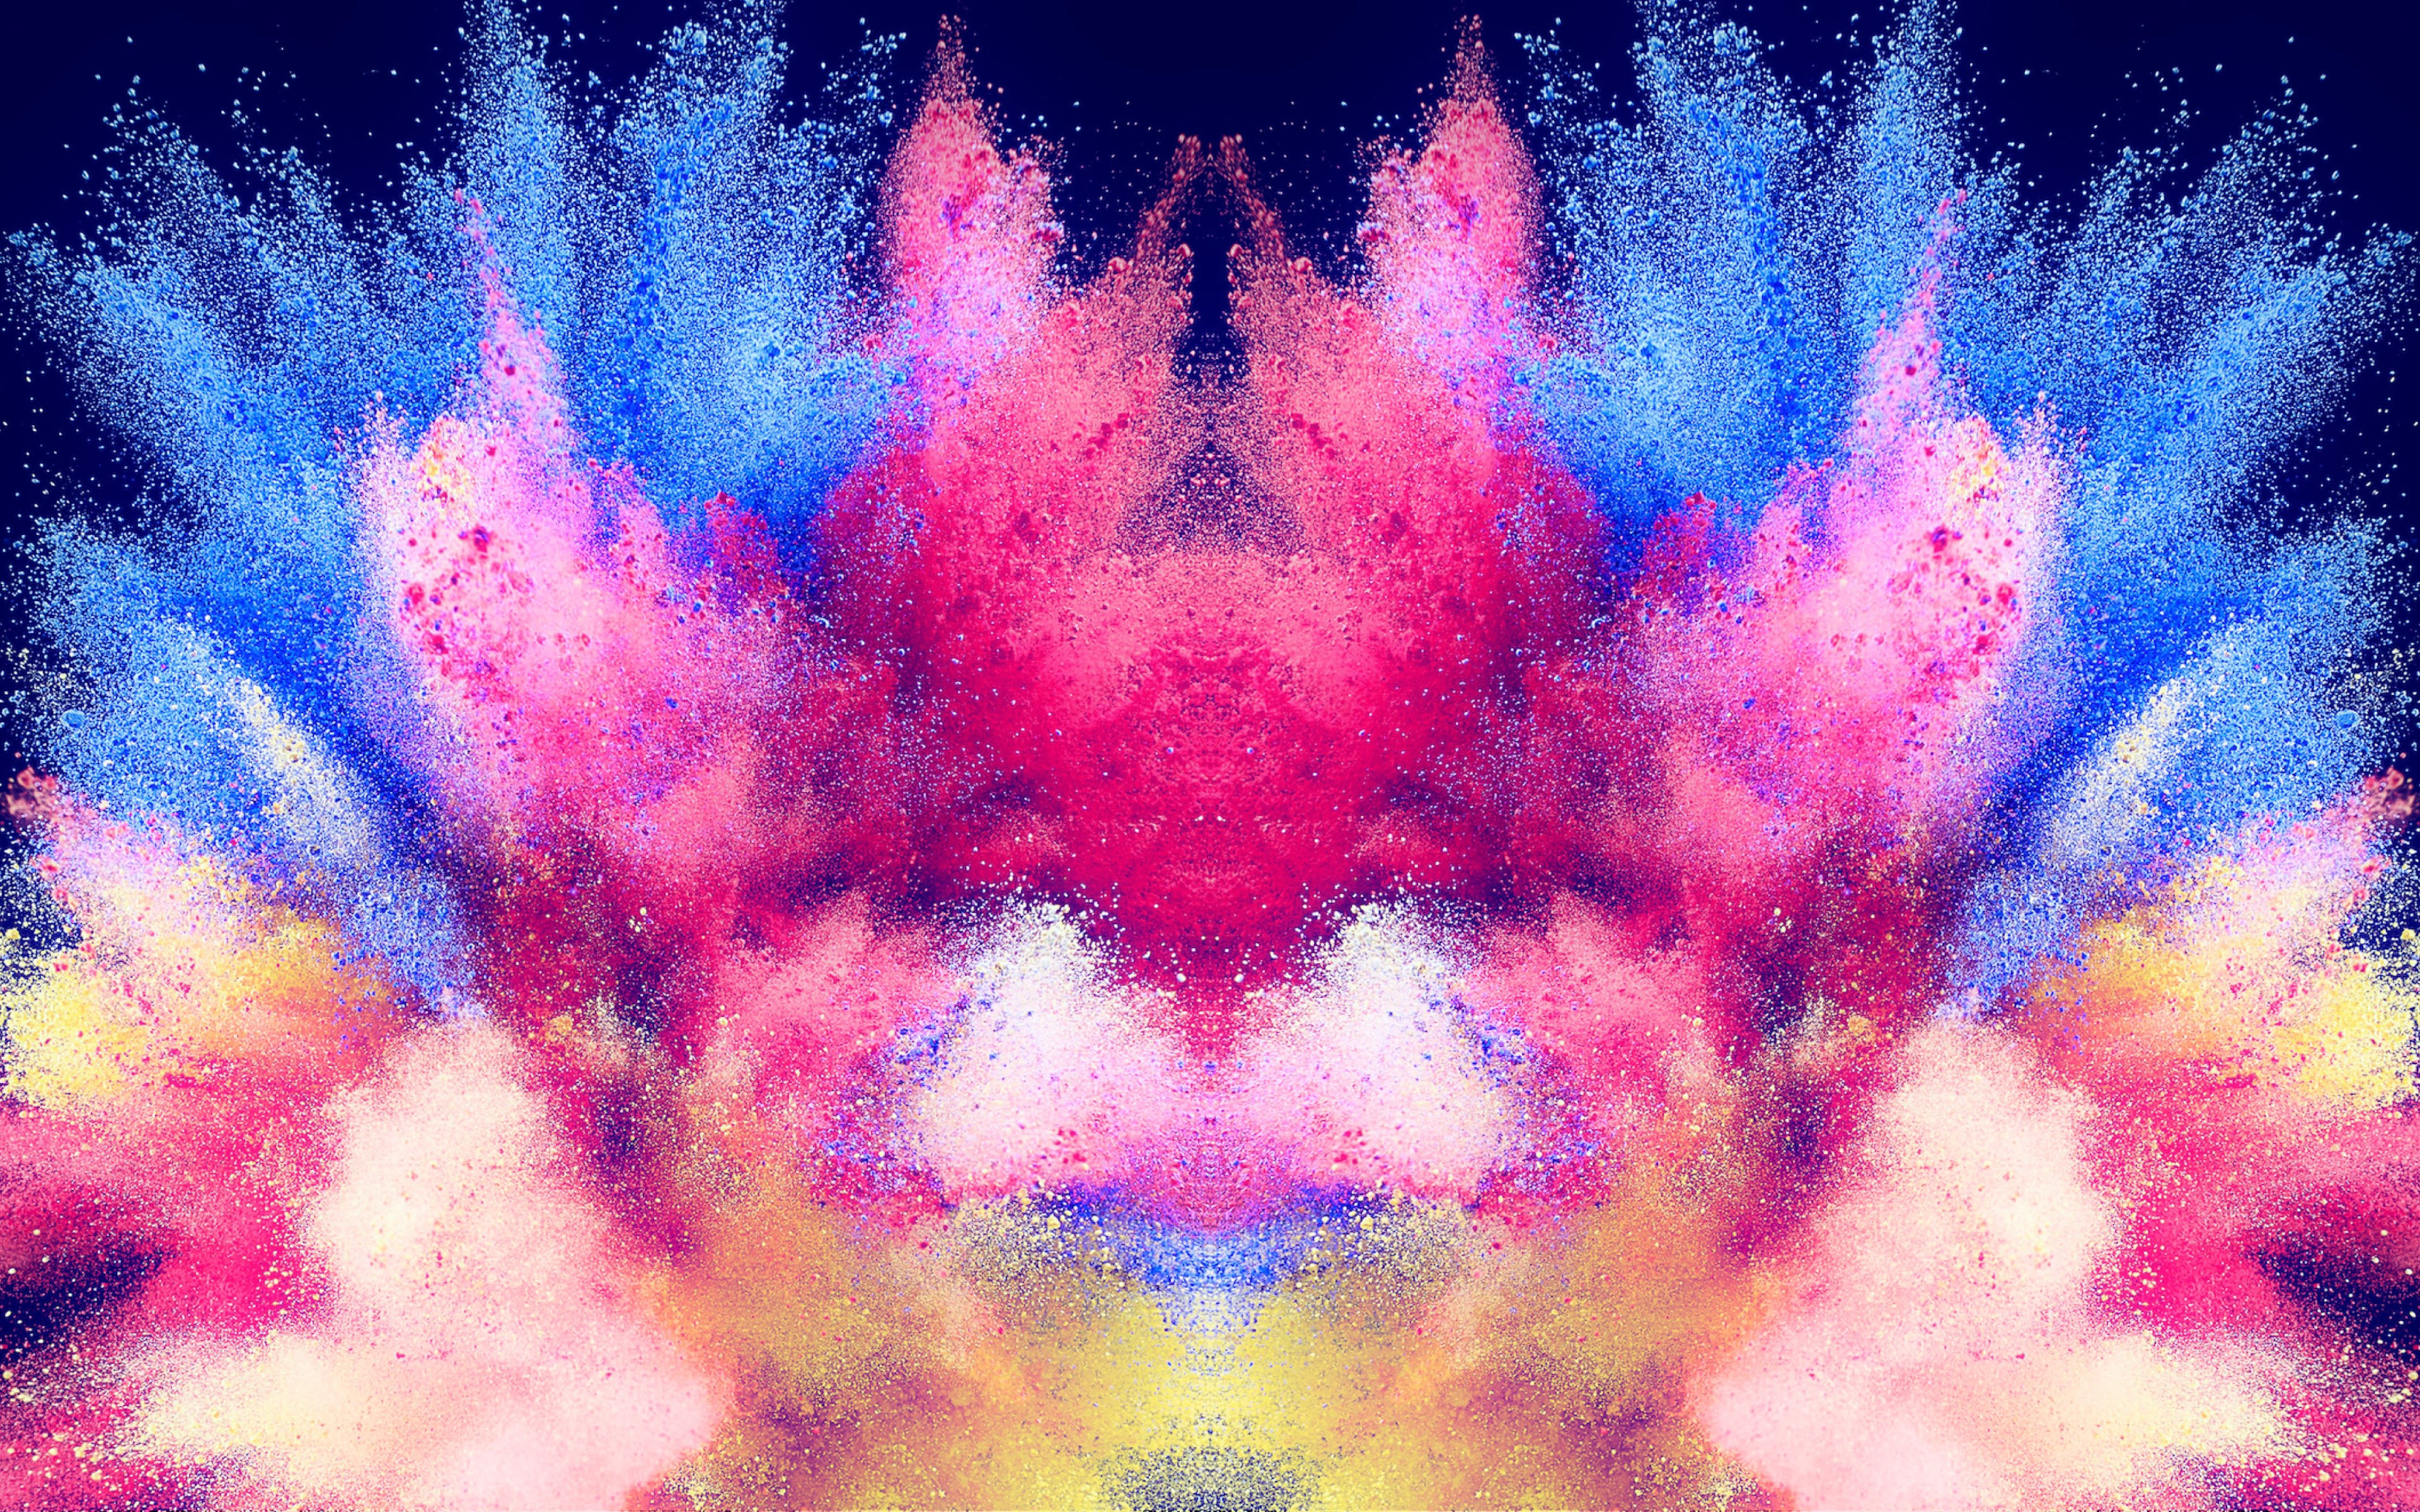 Abstract illustration: Powder colors wallpaper 3840x2400